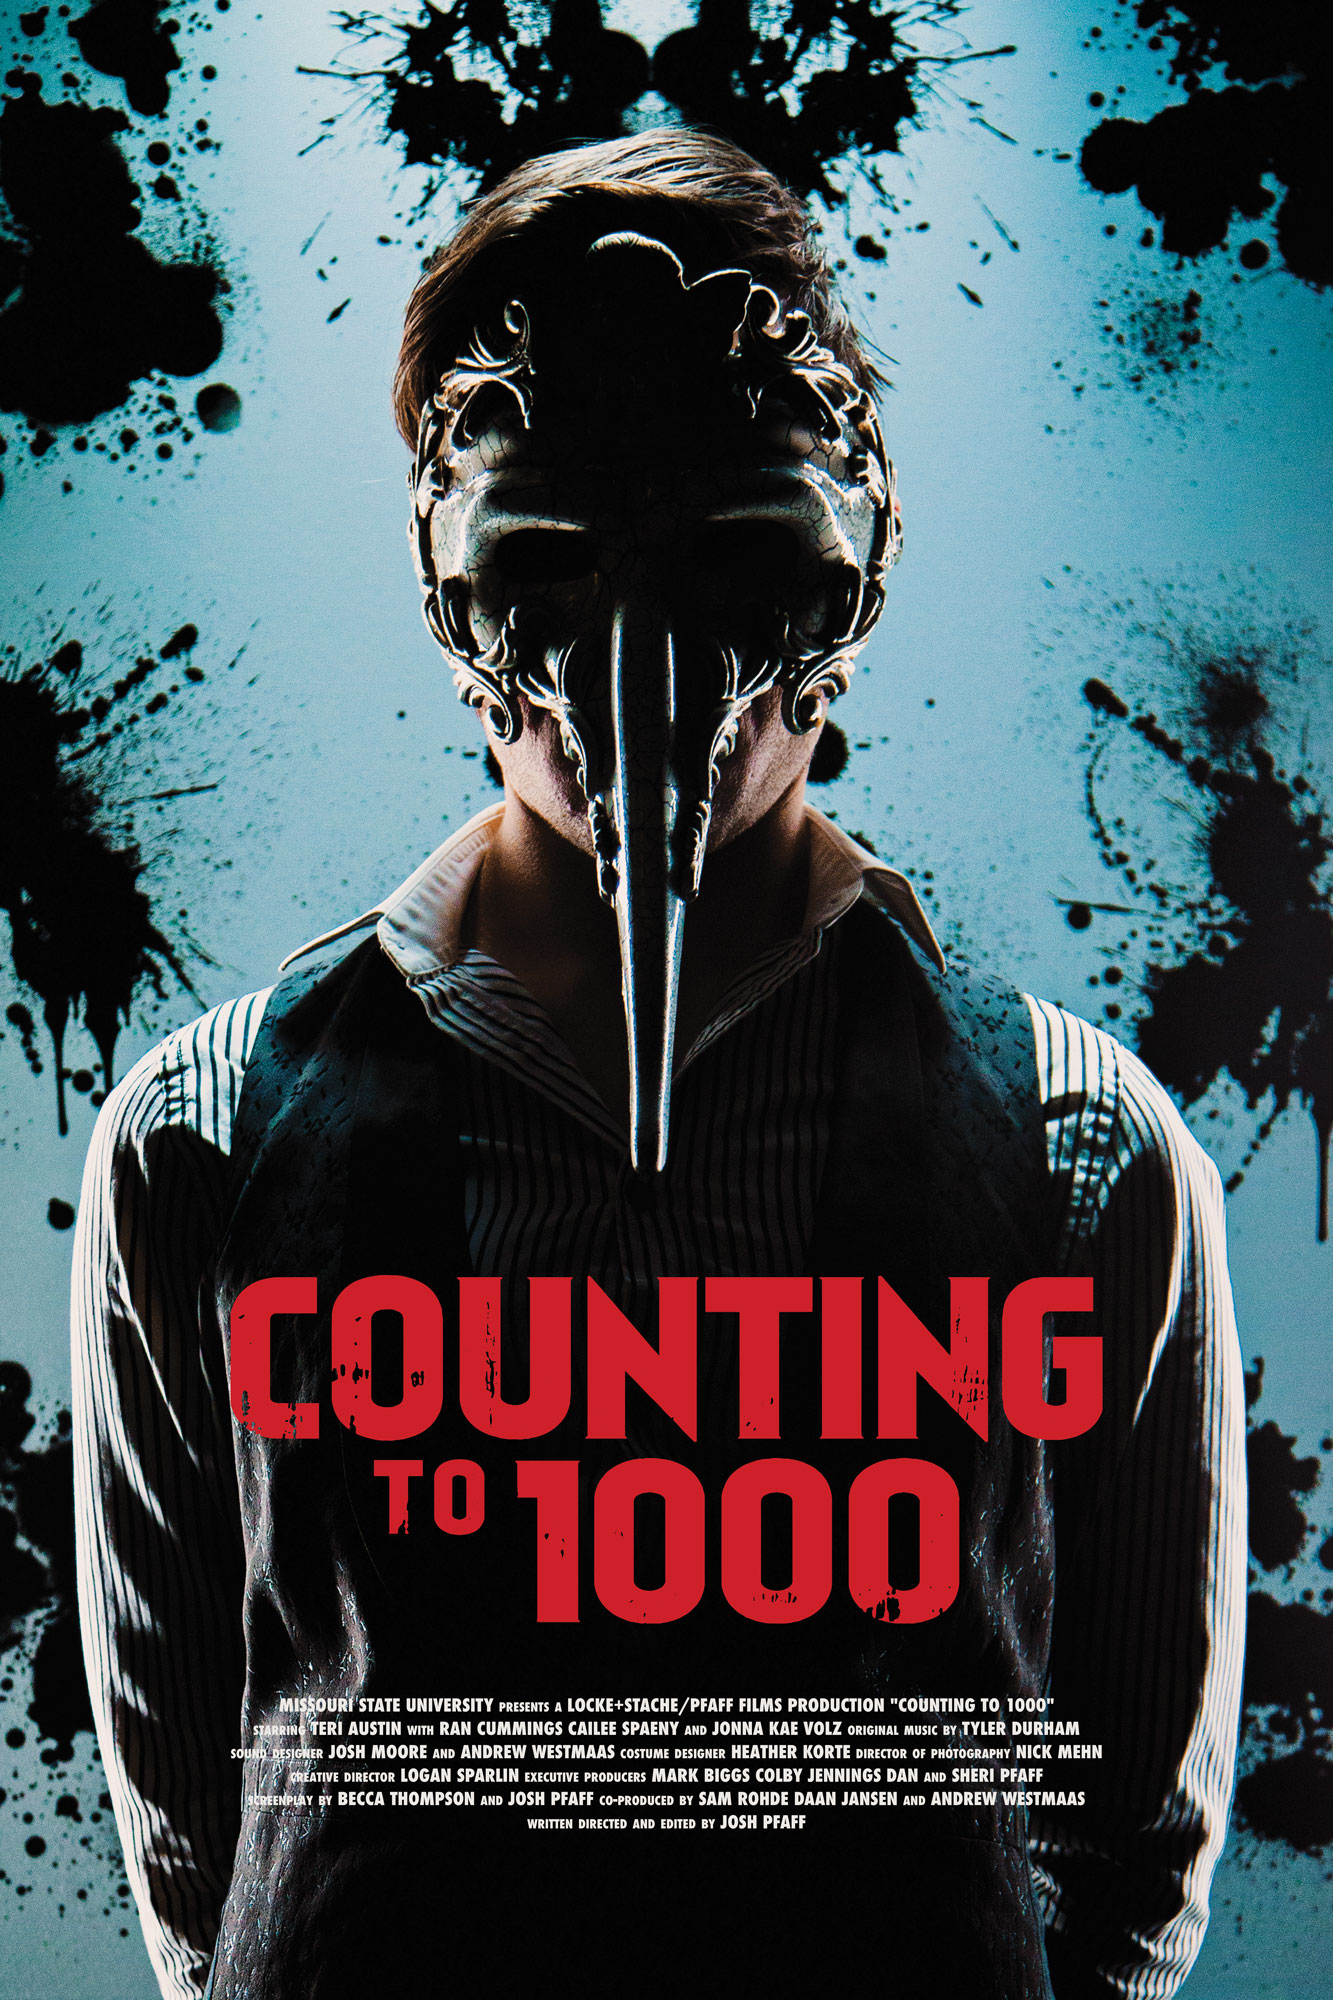 The official Counting to 1000 poster! The film premieres on Sunday, May 8th. Be on the lookout and remember, the worst is waiting...